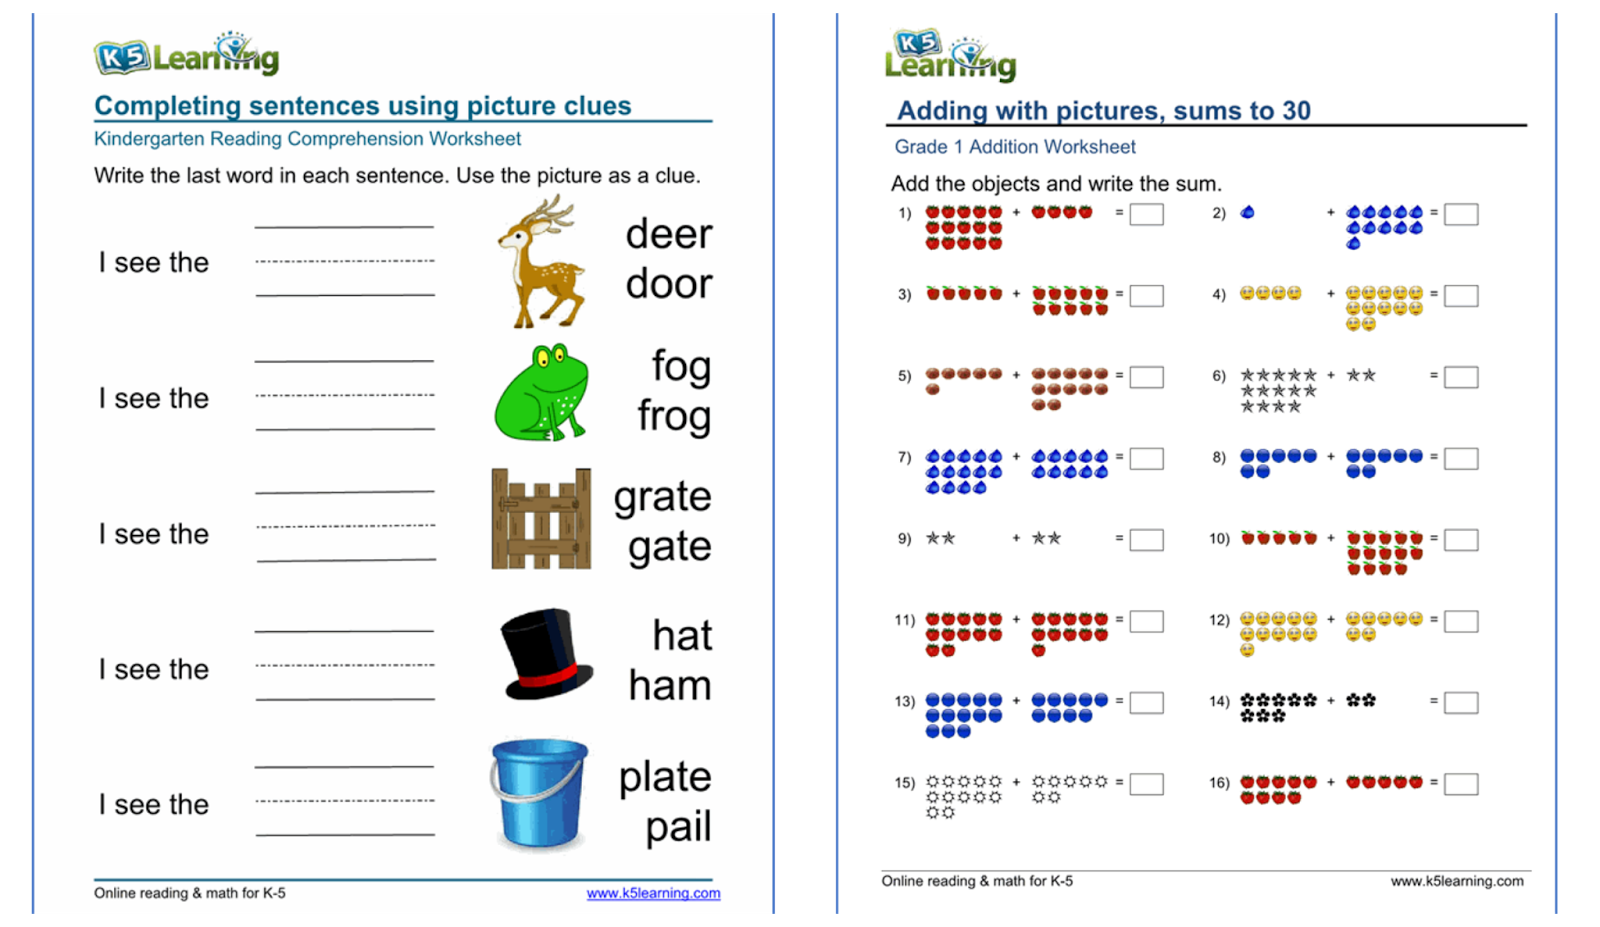 Line Math And Reading Enrichment Program For Kids K5